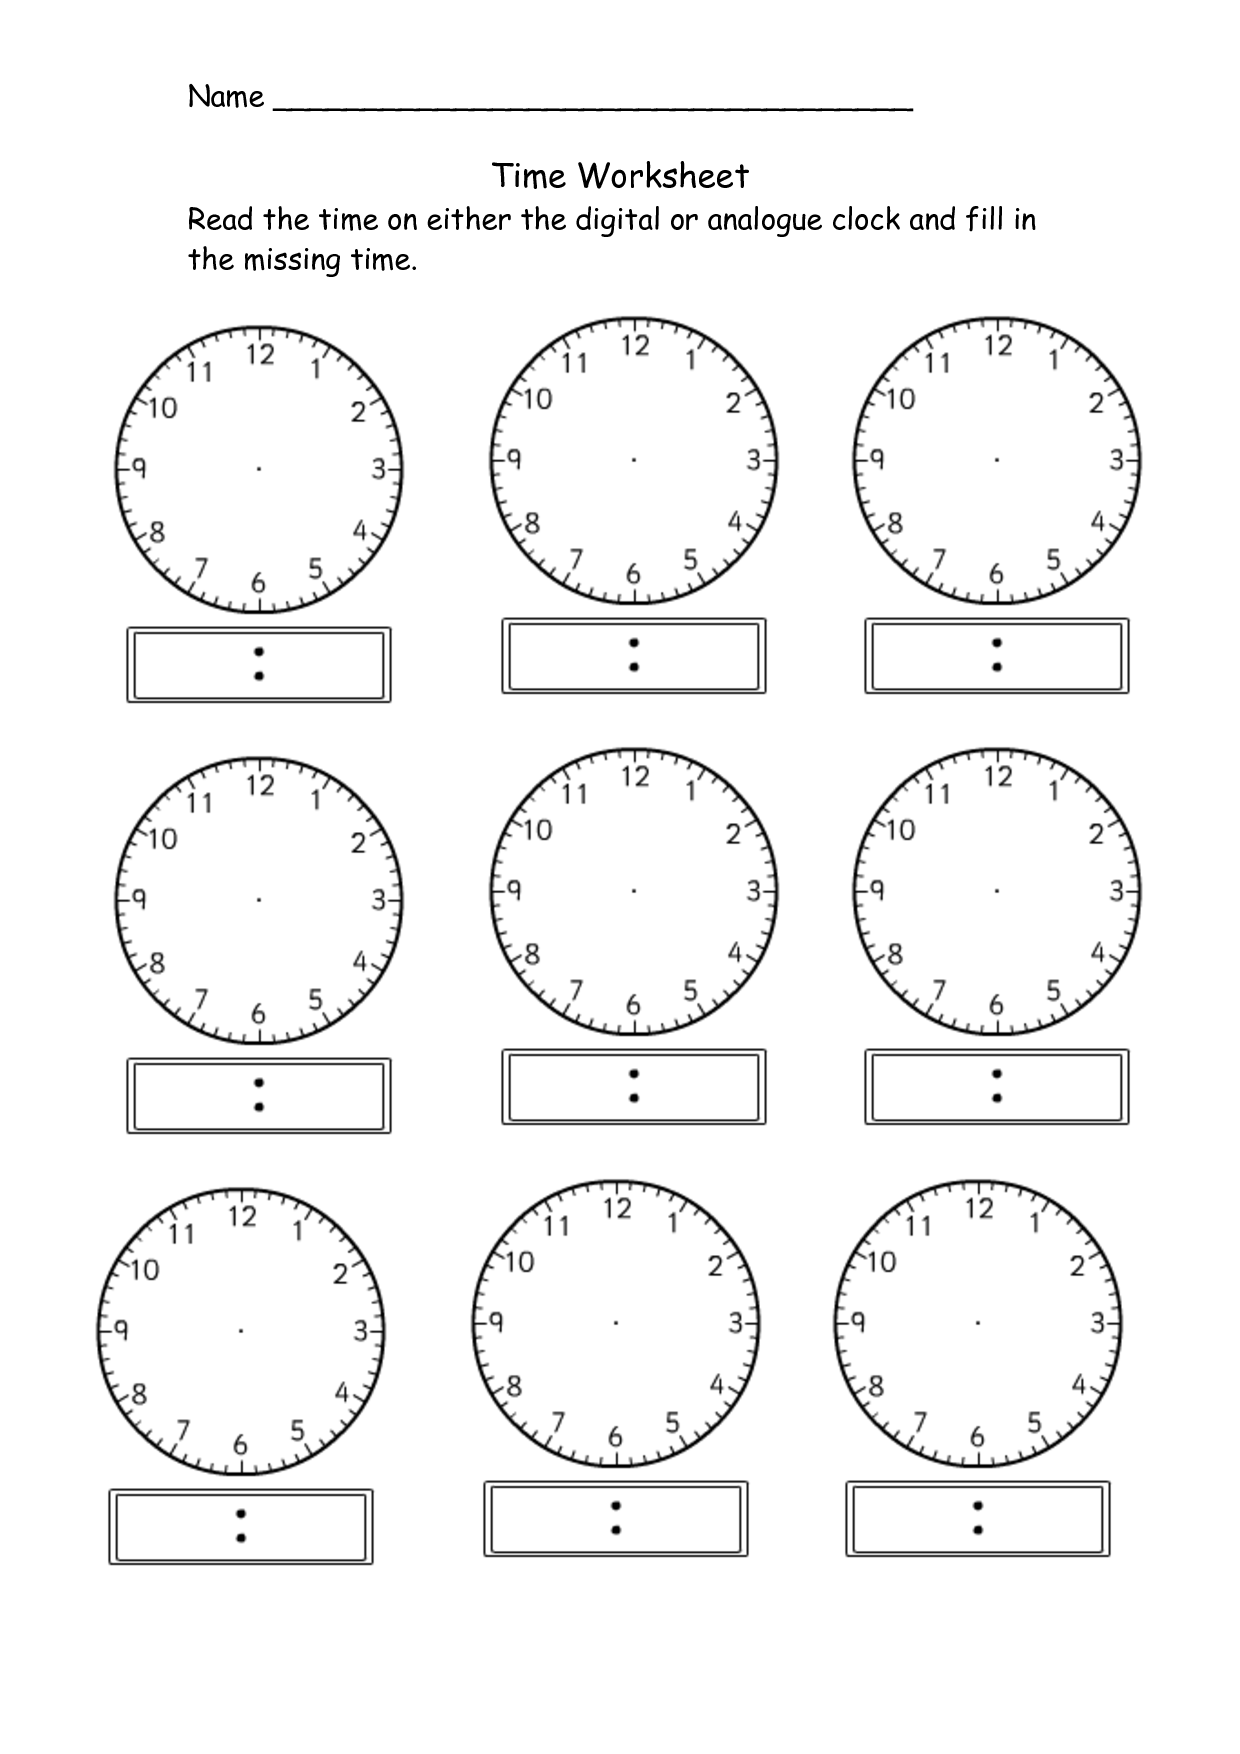 worksheet Time Worksheet printable worksheets time with clock worksheet blog blank clocks 2017 calendar